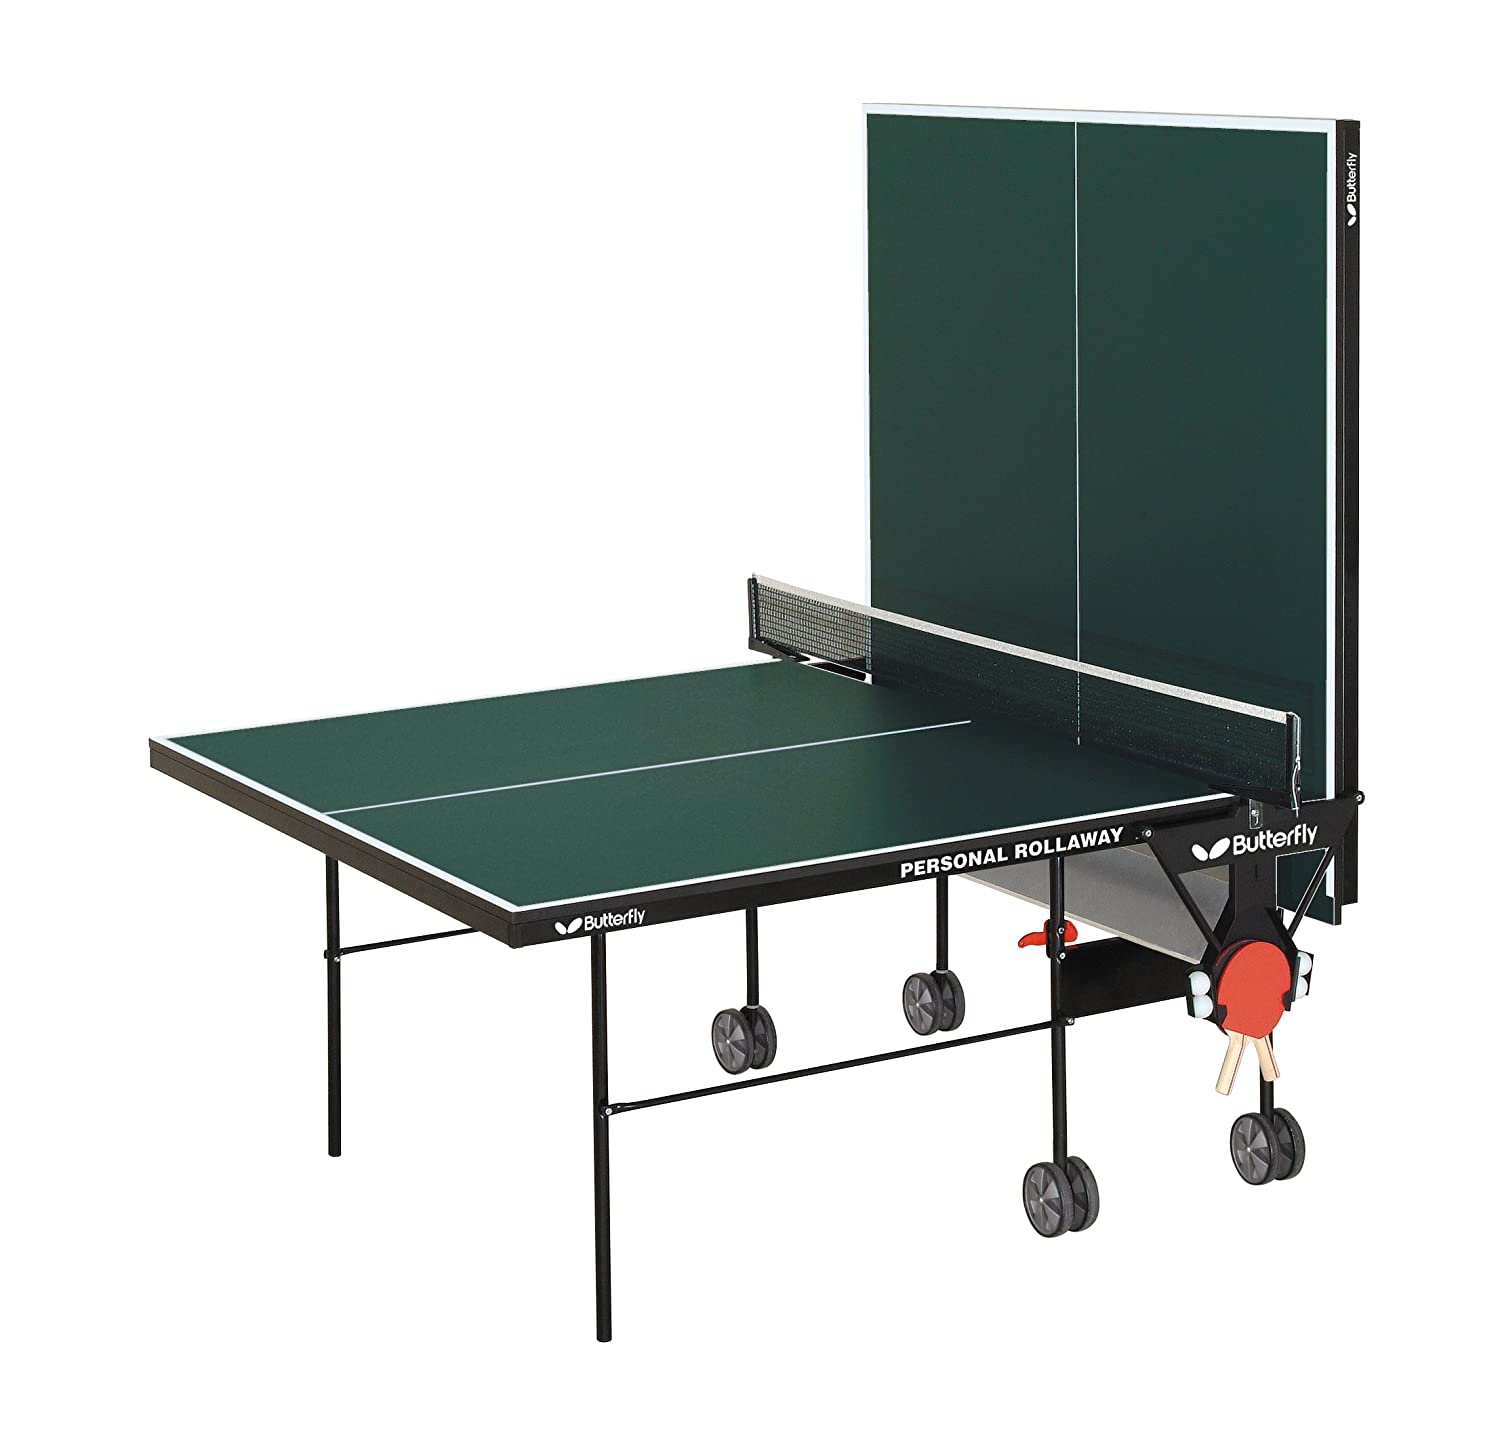 Amazon.com : Butterfly TR21 Personal Rollaway Table Tennis Table (Green) : Ping  Pong Table : Sports U0026 Outdoors